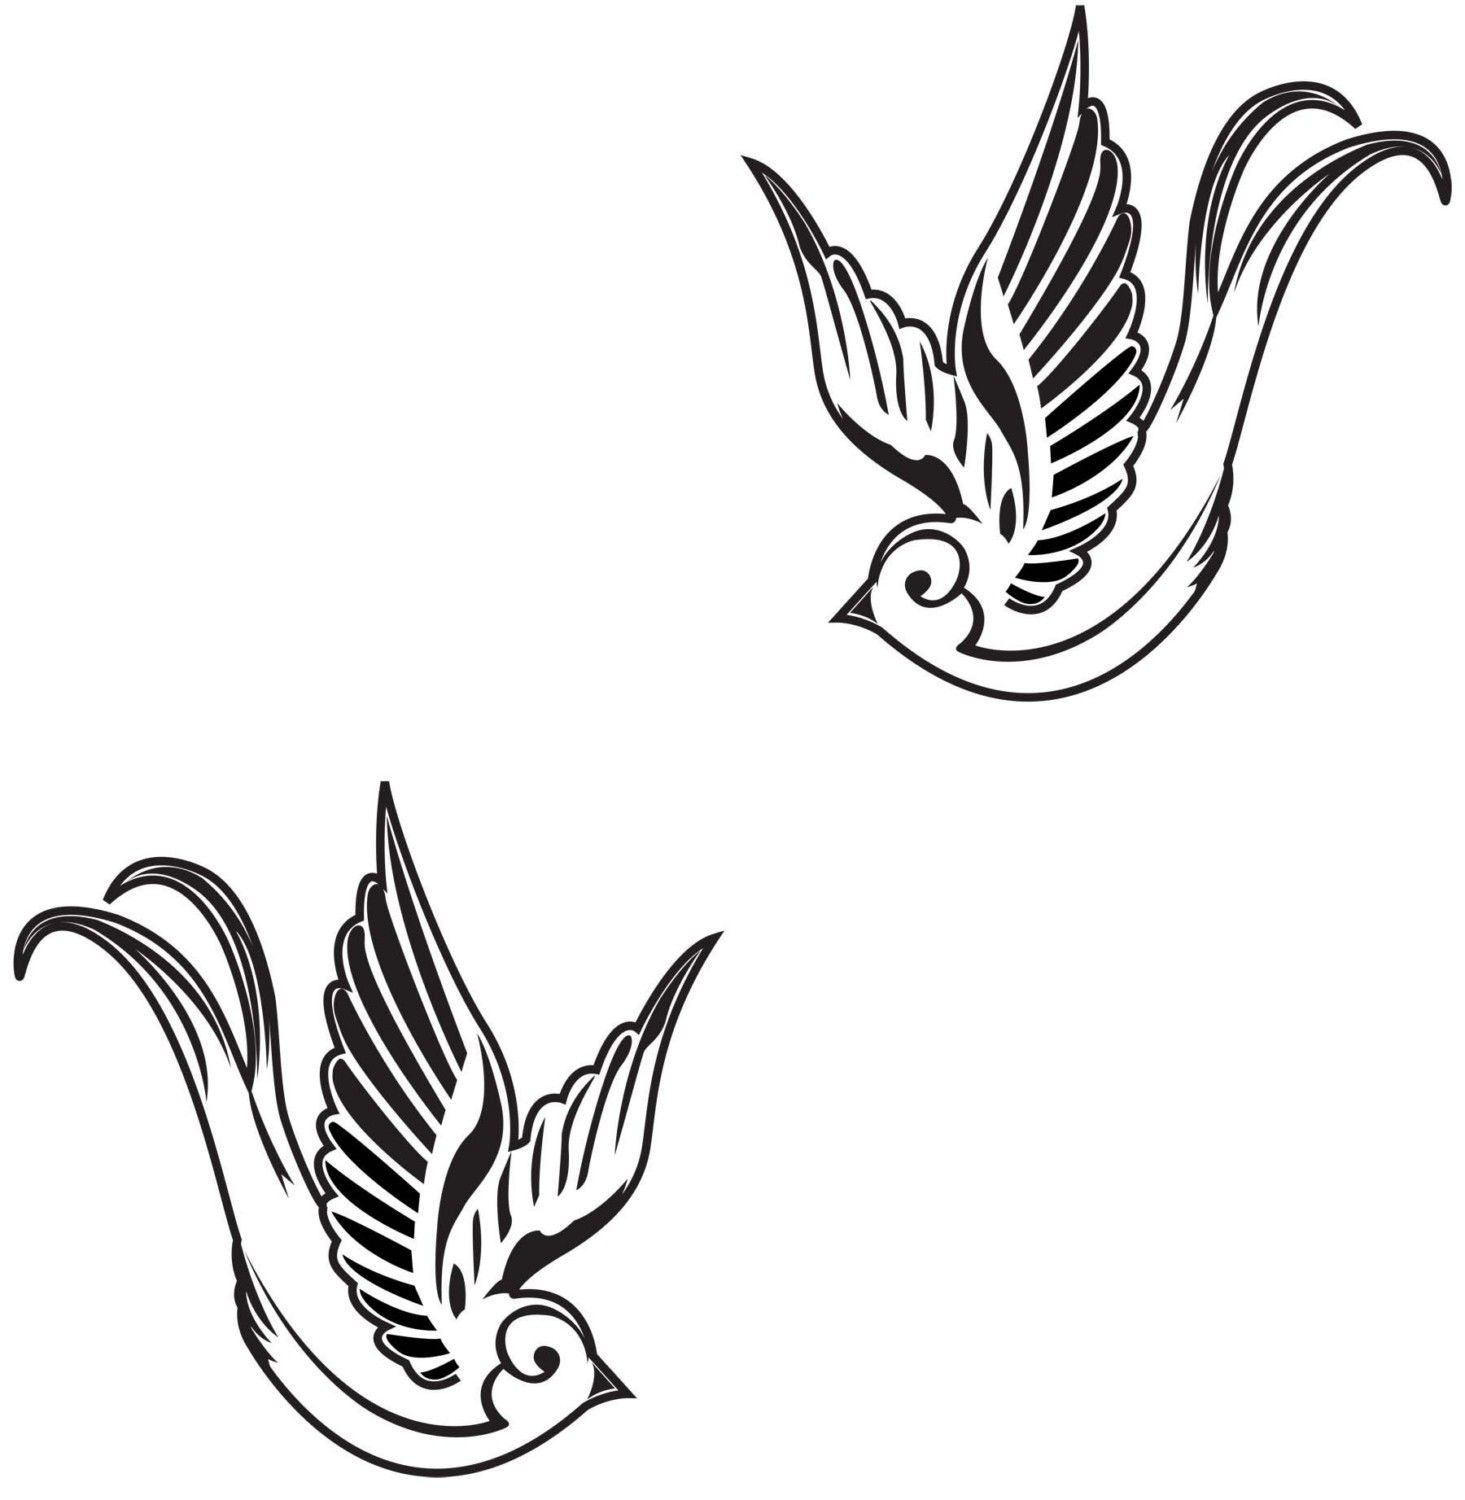 Swallow Tattoo Designs for Women | All About 12: Sparrow ... - photo#35